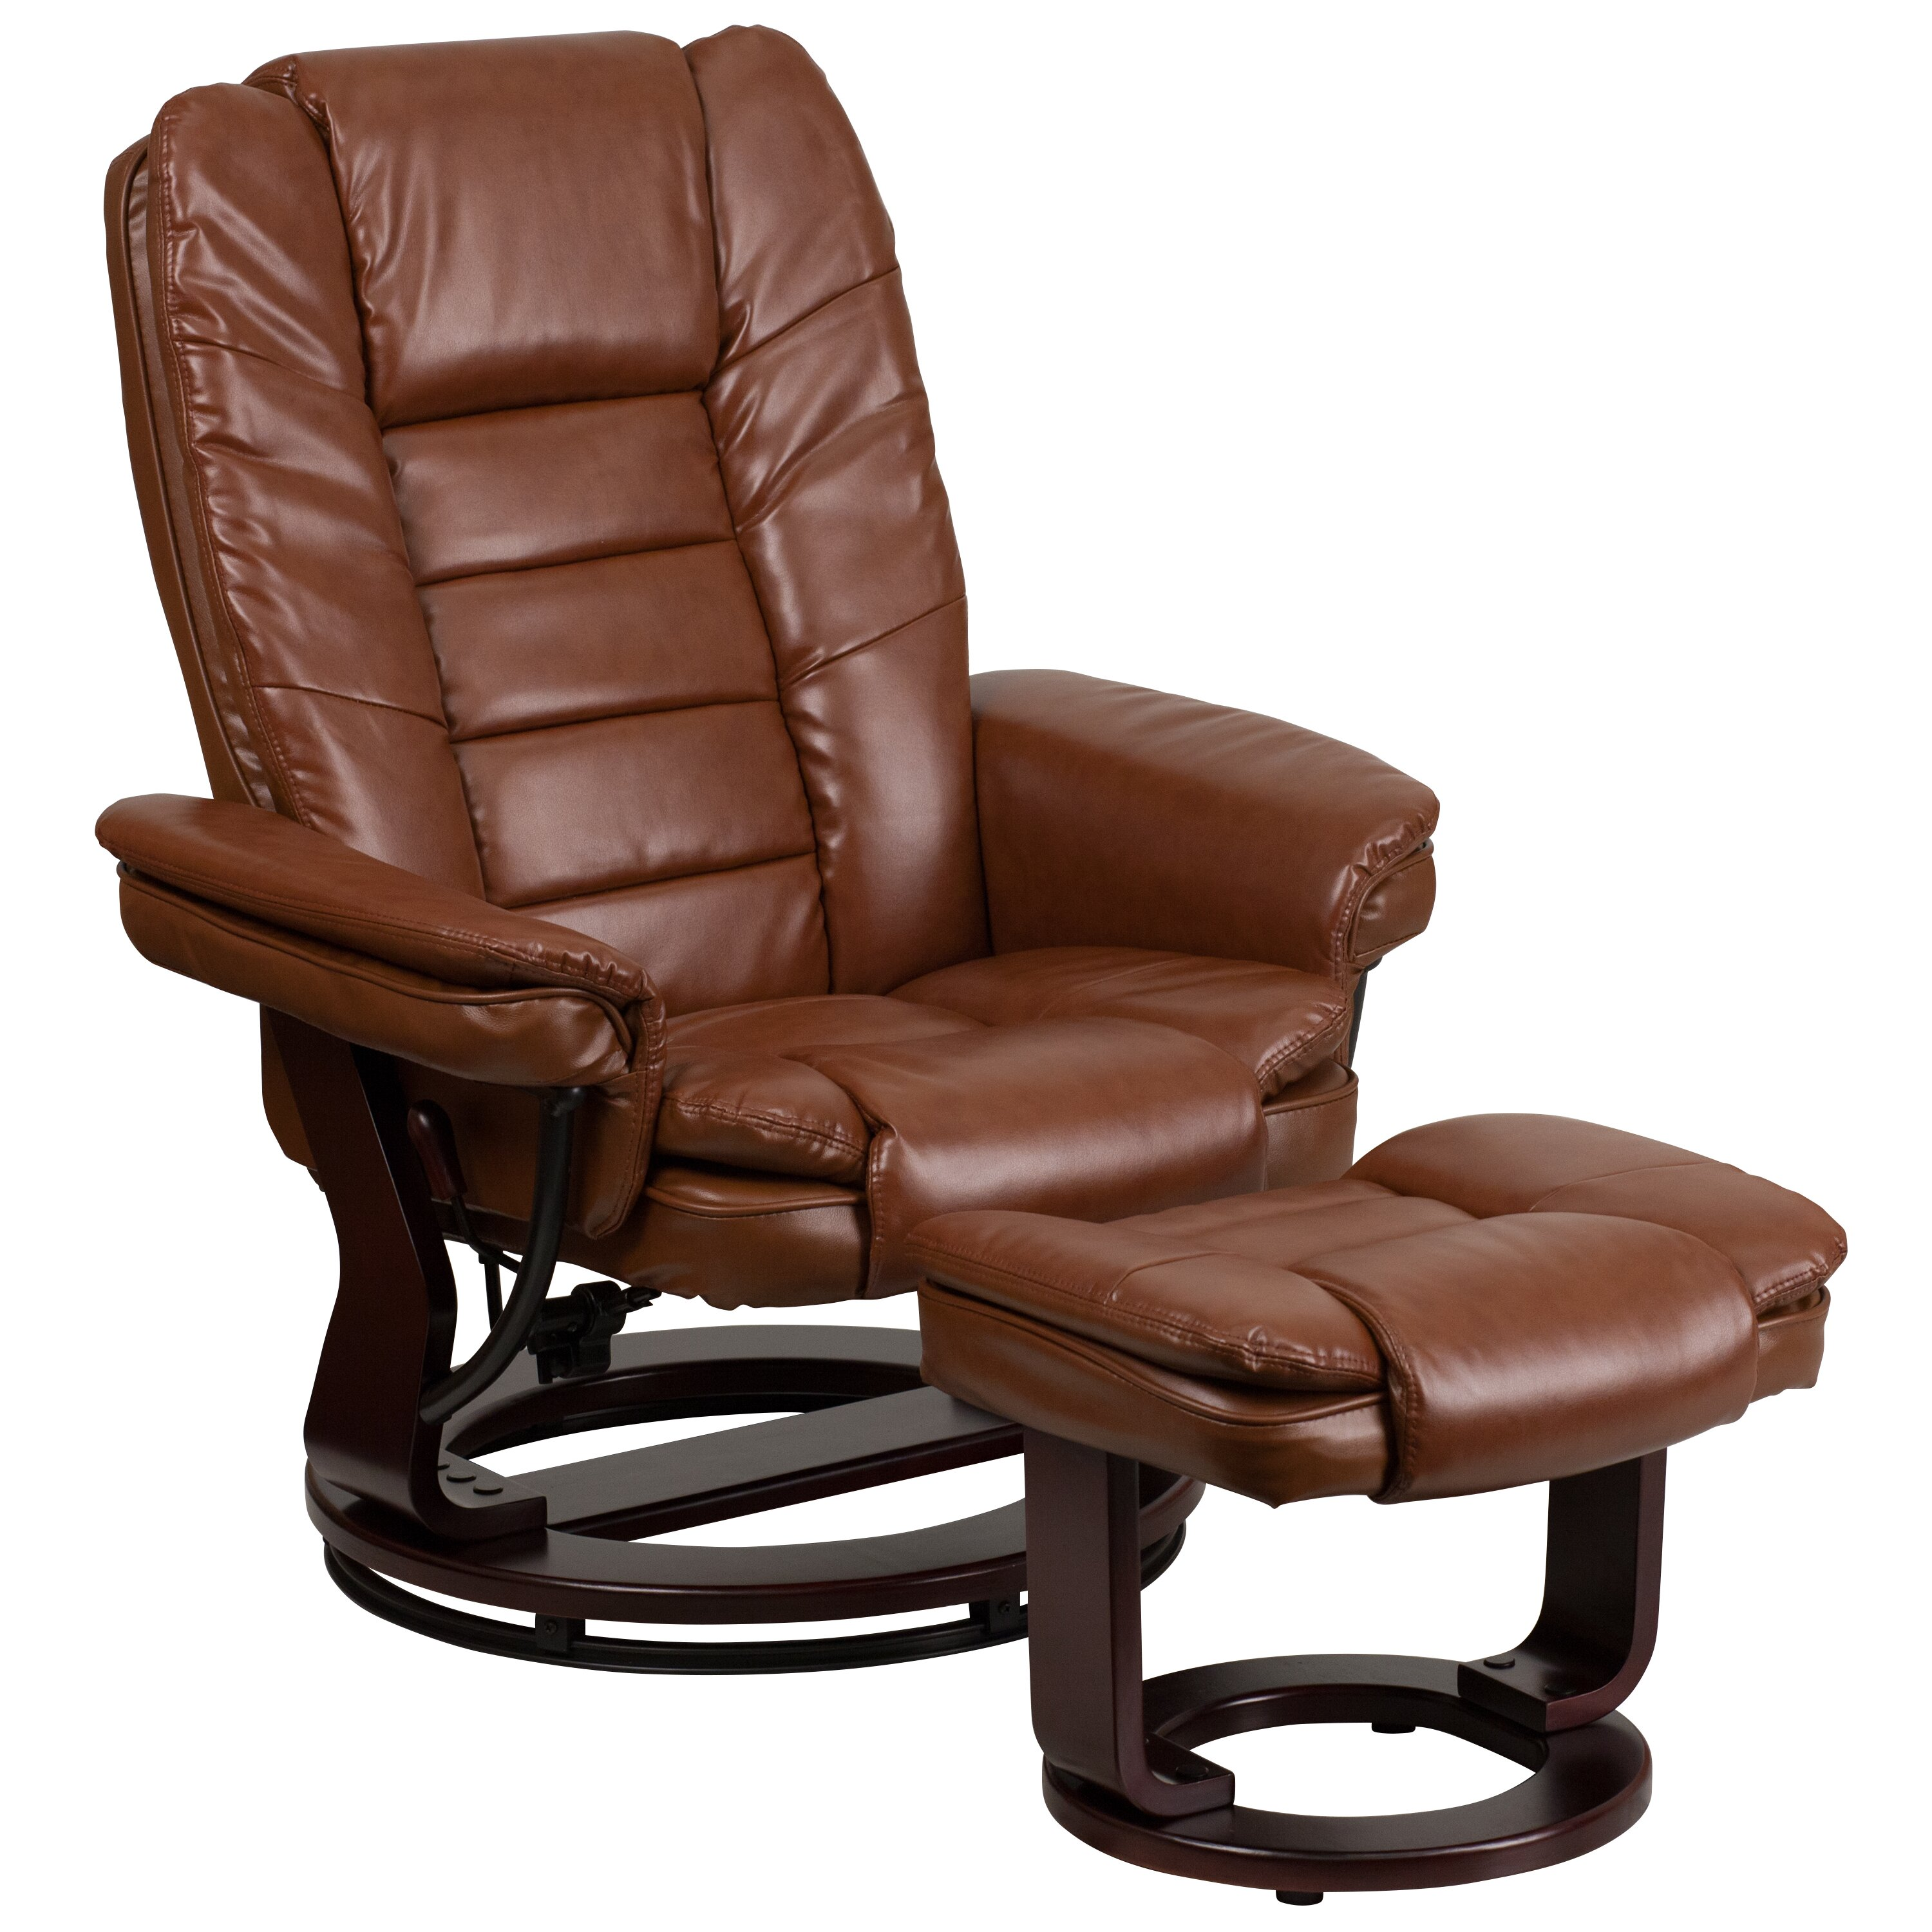 Flash Furniture Recliner and Ottoman & Reviews